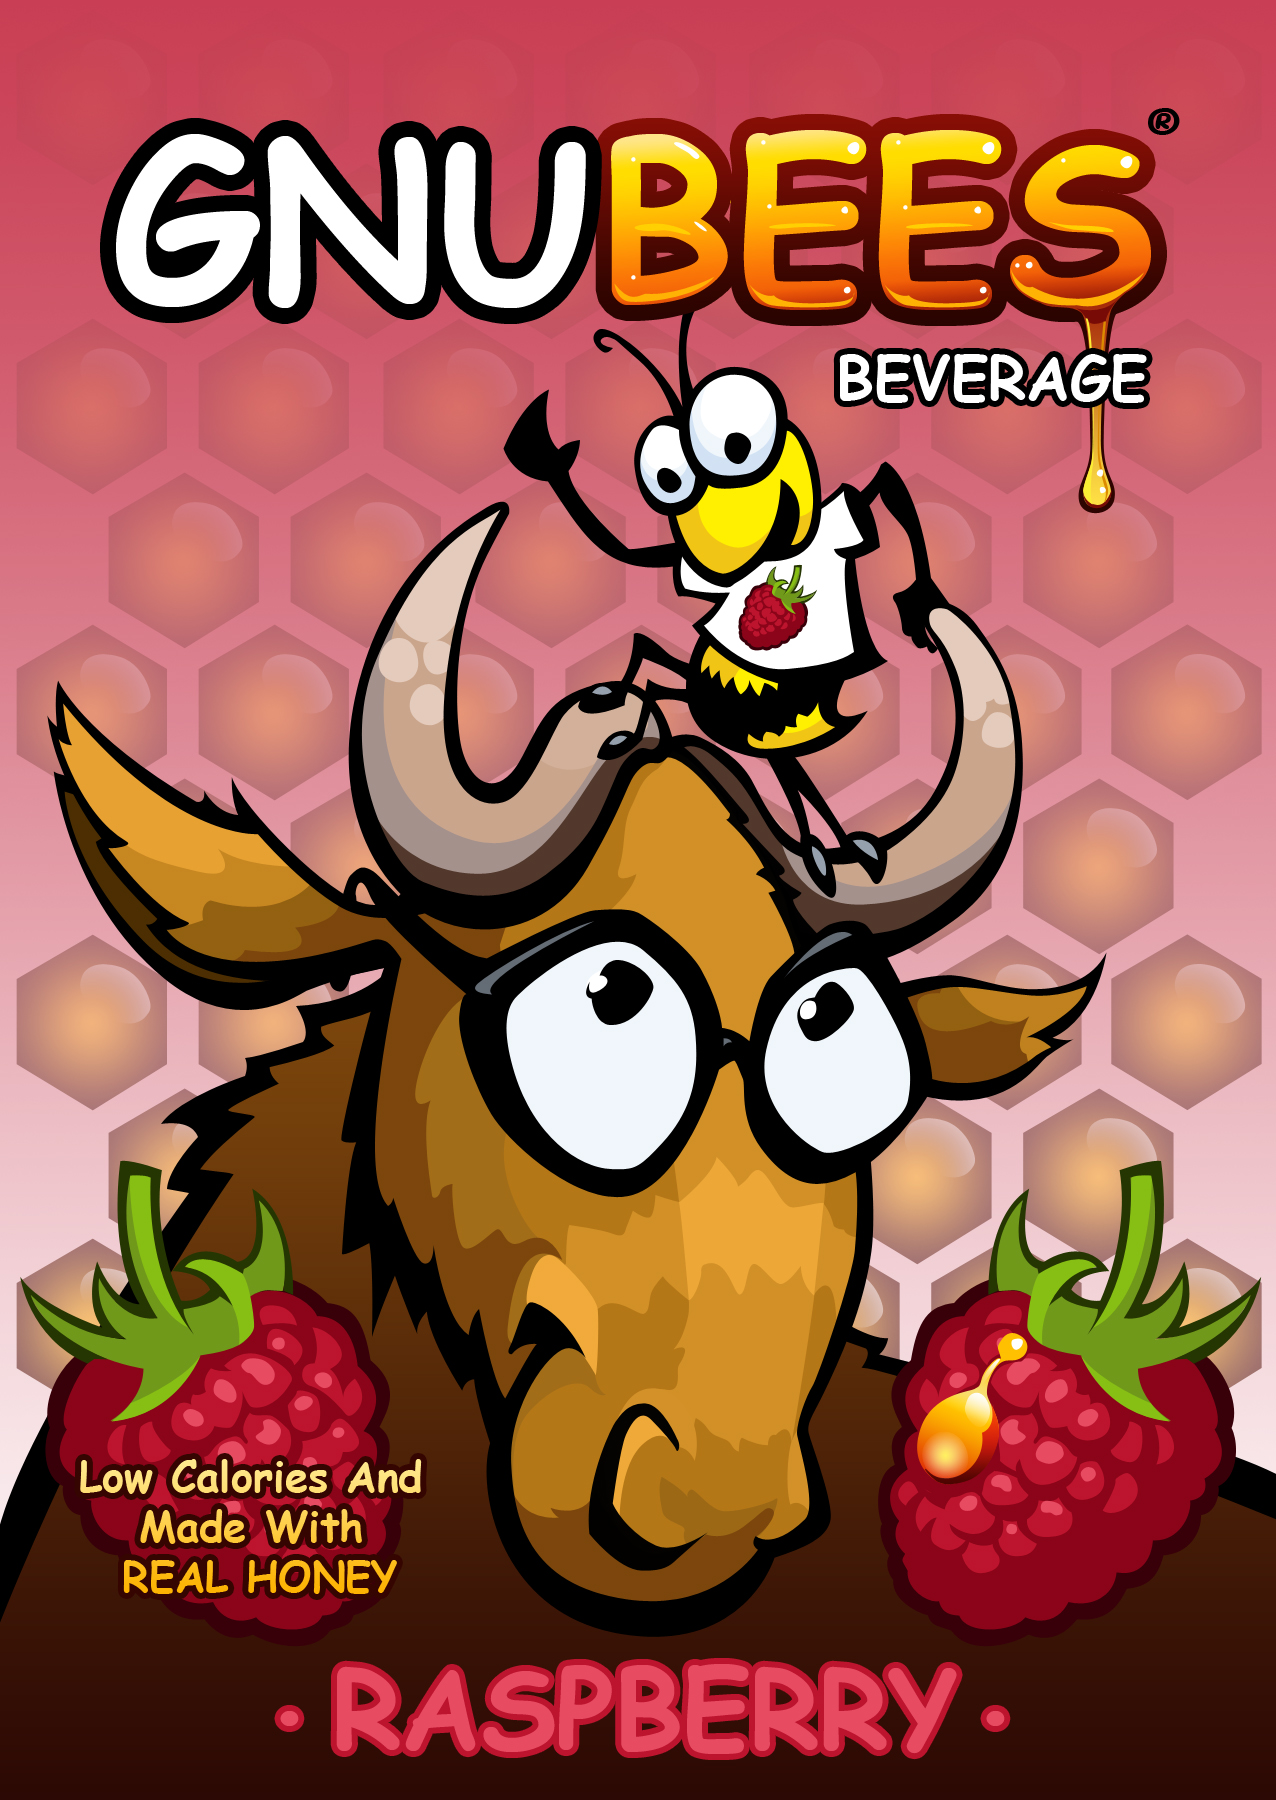 Gnubees beverage label